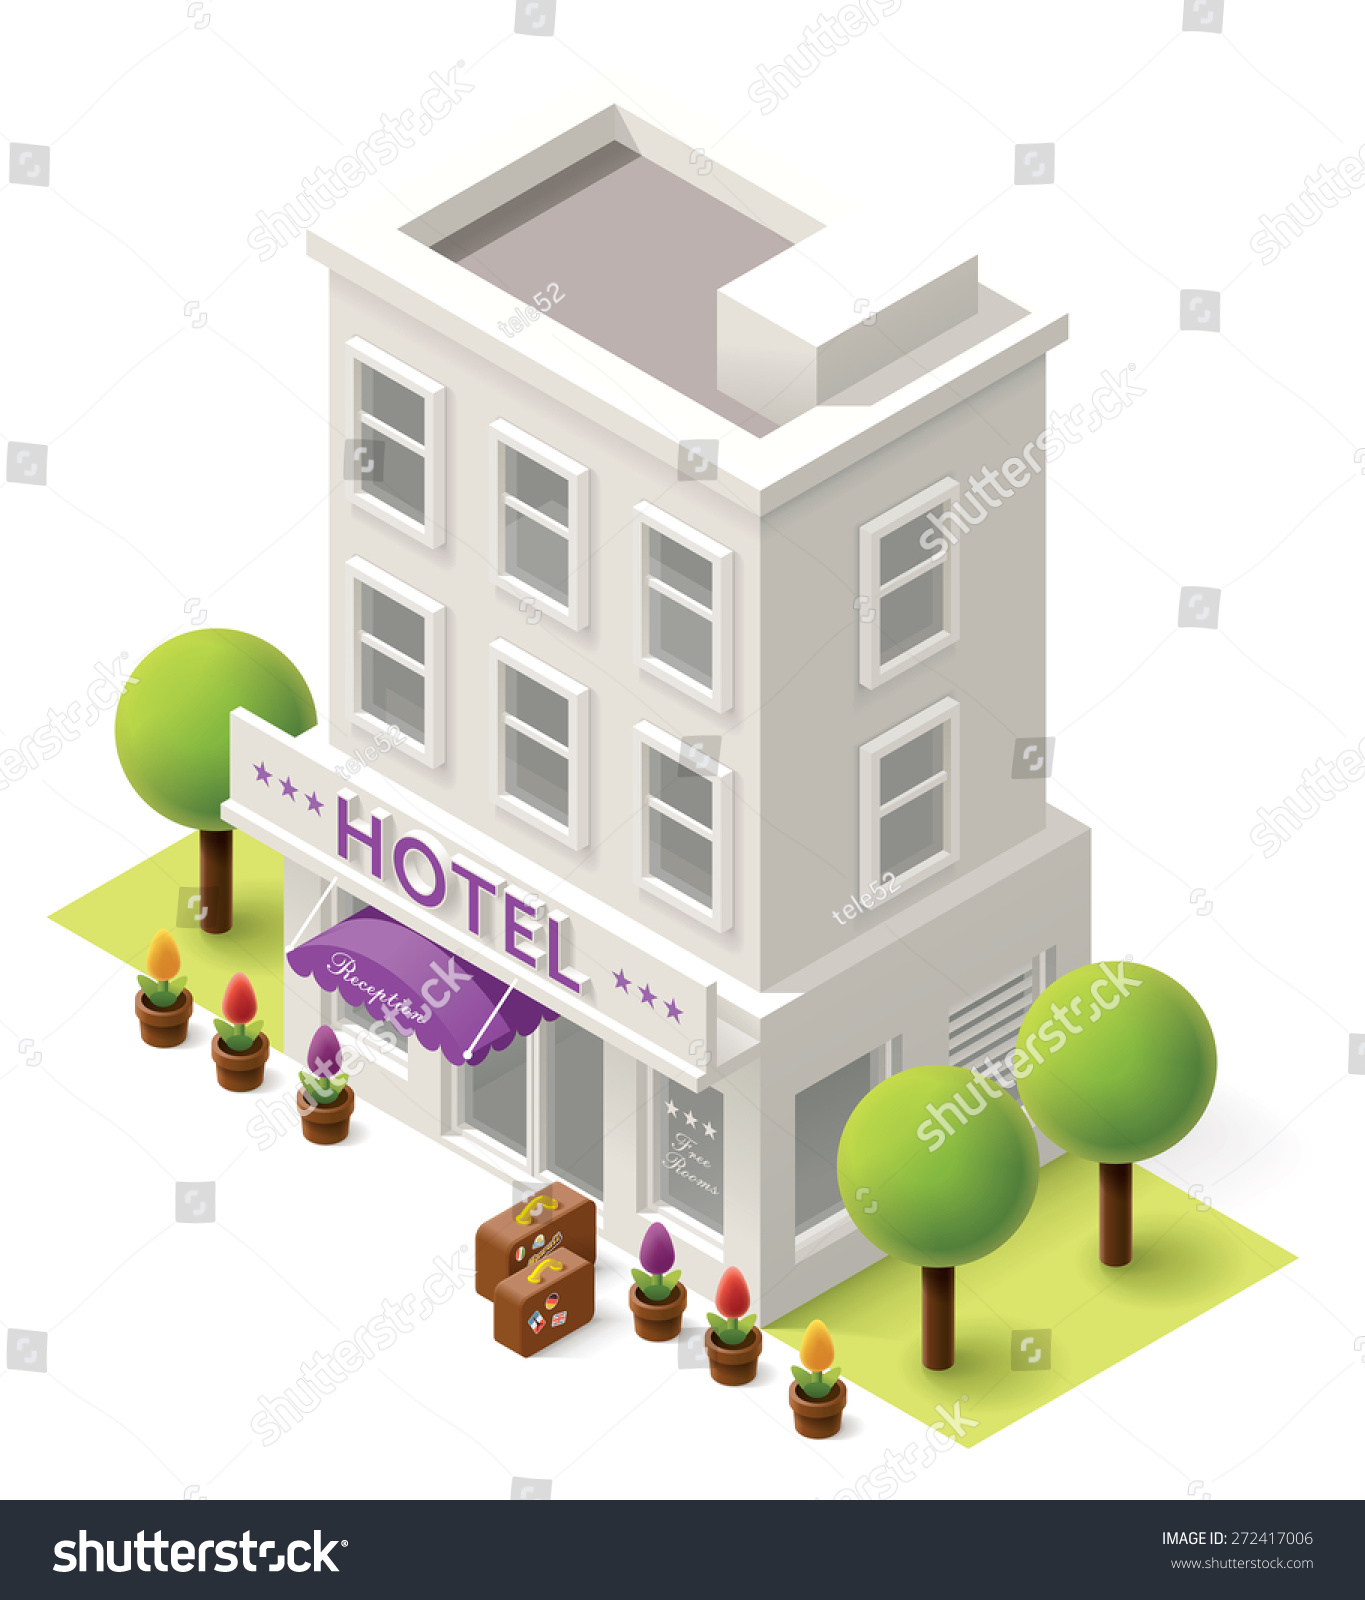 vector isometric icon representing hotel building stock Storefront Clip Art Black and White Old Storefront